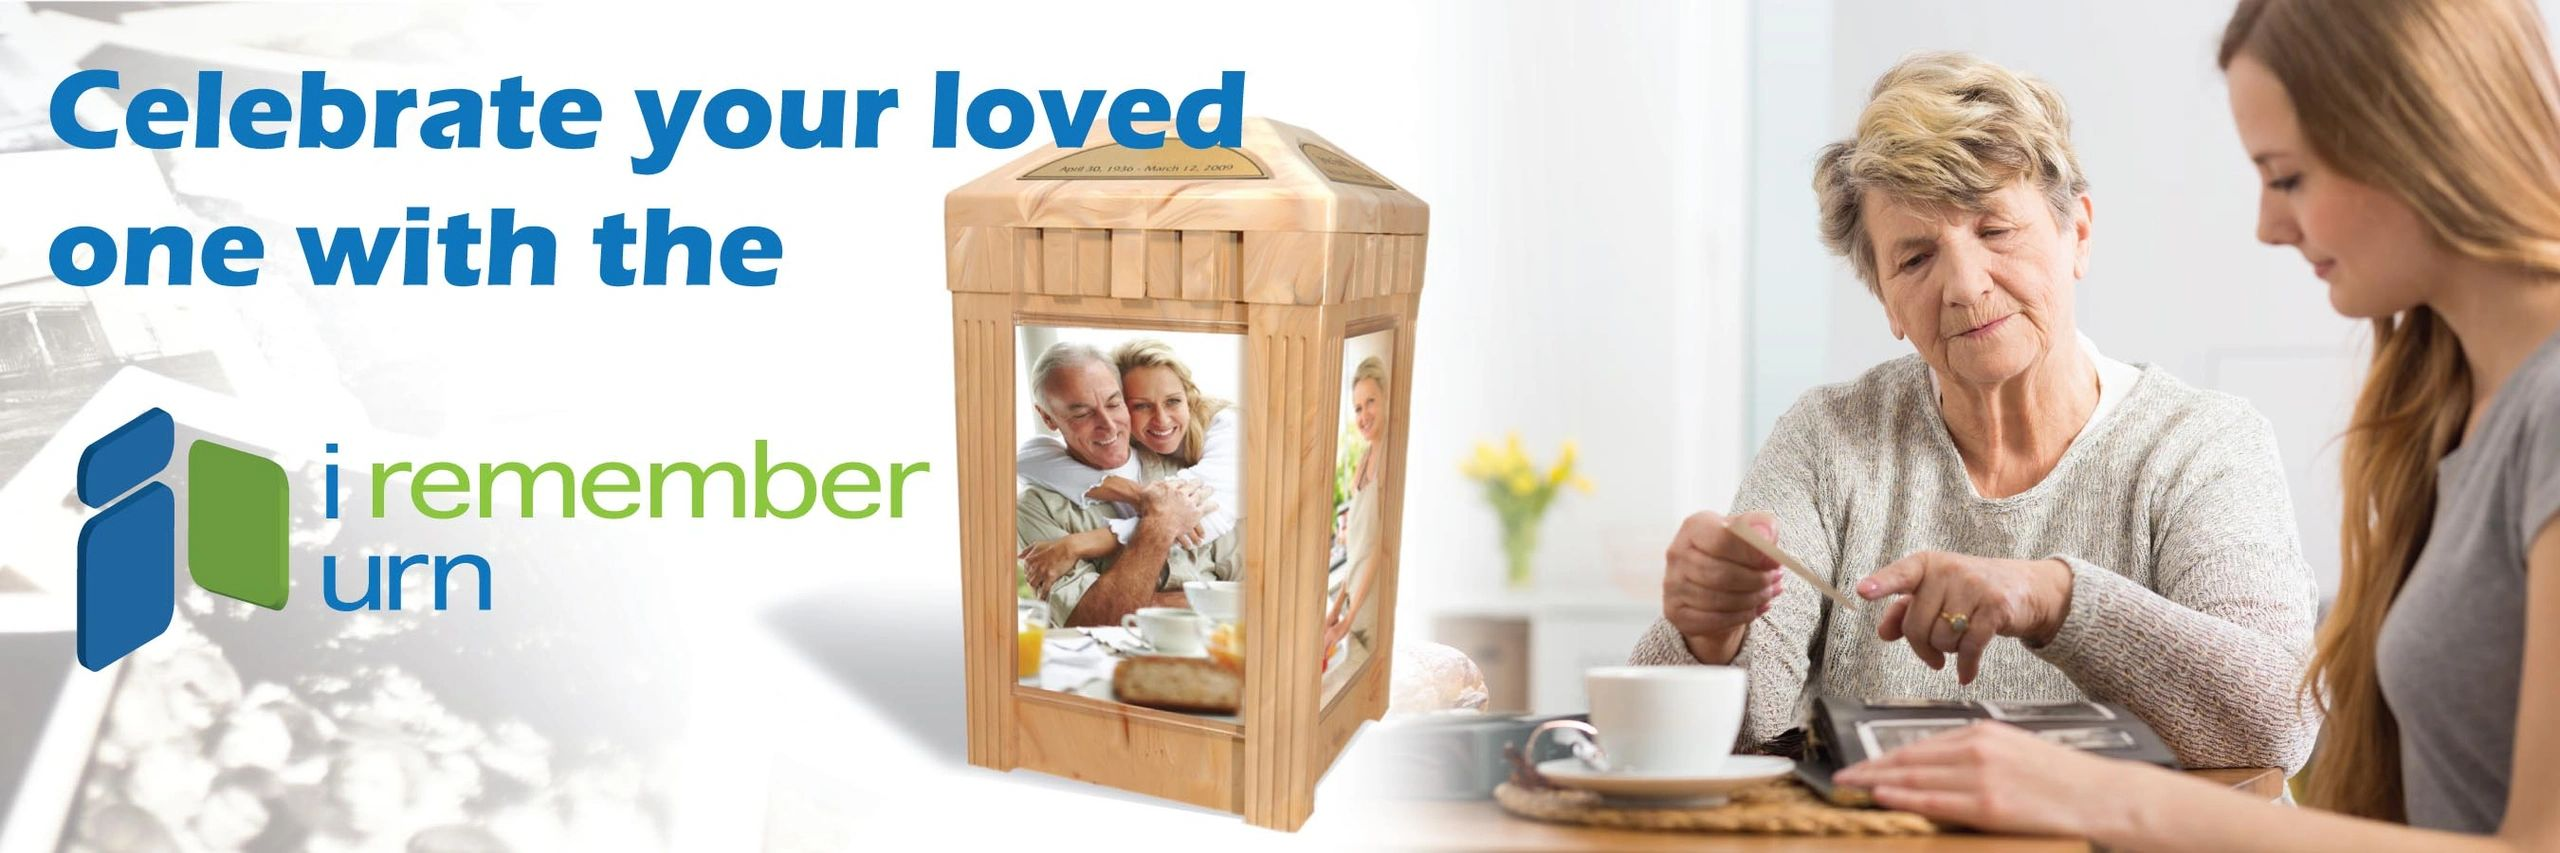 Celebrate your loved one with the I Remember Urn.